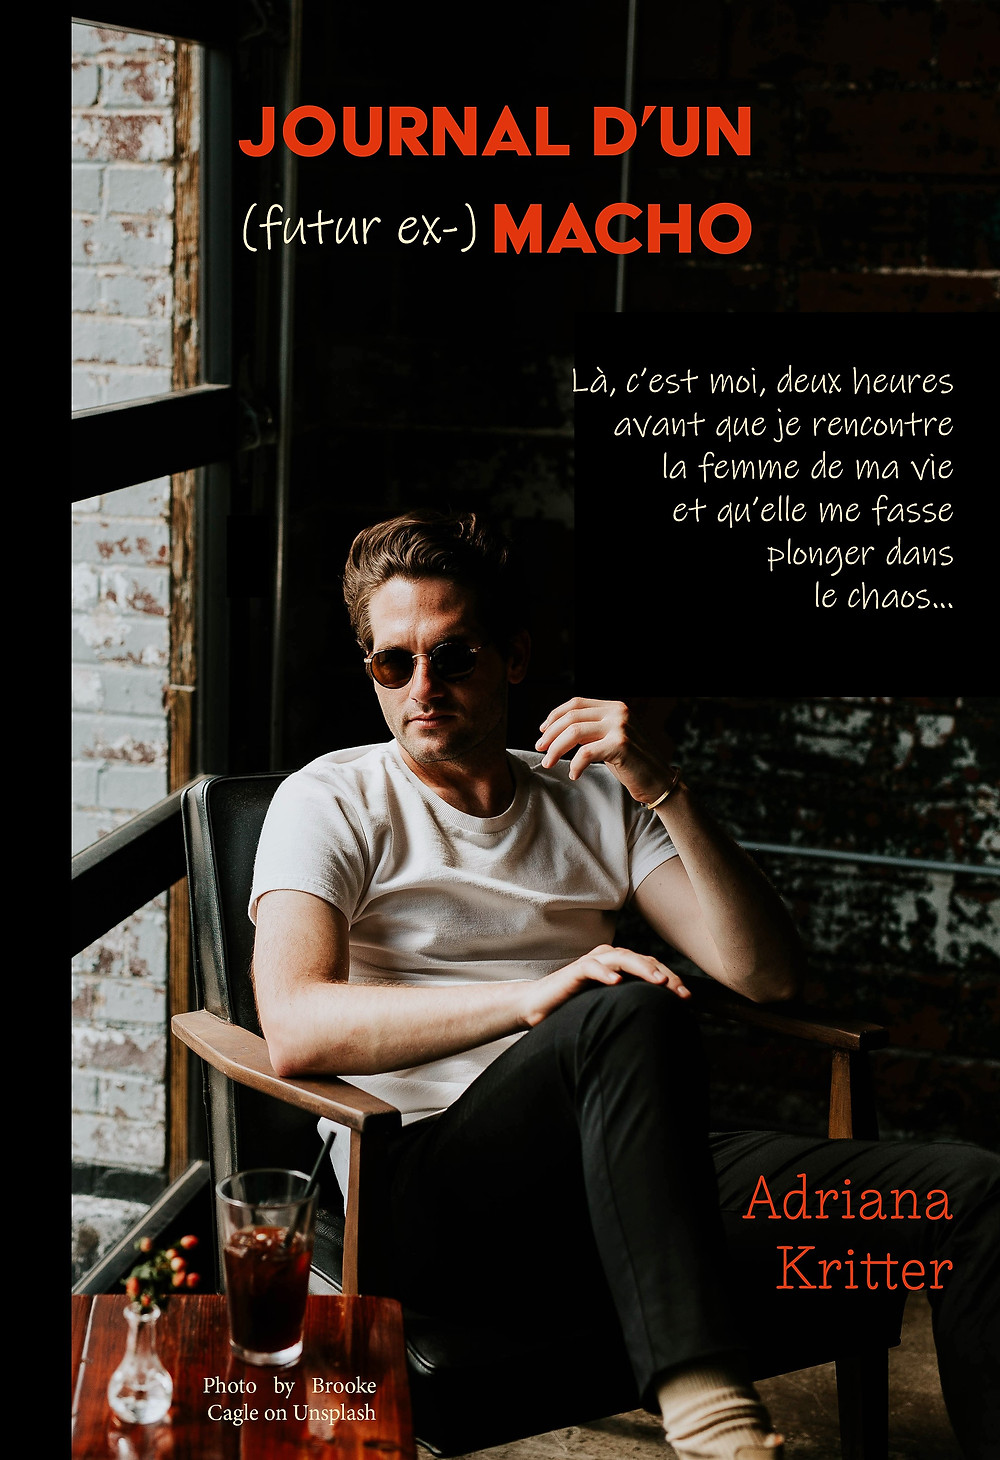 JOURNAL D'UN (future ex-) MACHO - Adriana Kritter